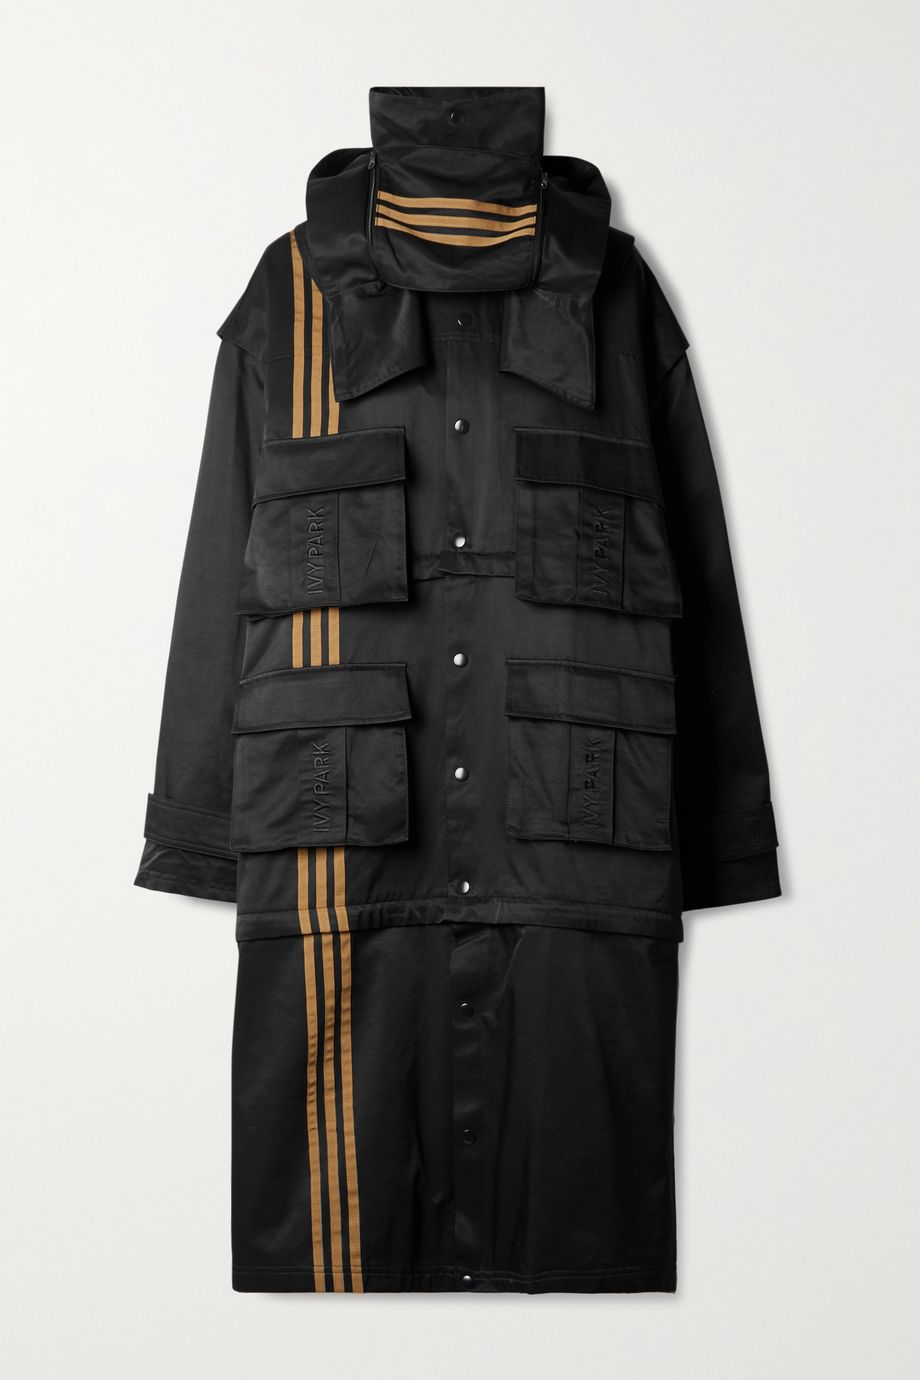 adidas Originals + Ivy Park 4All convertible hooded striped cotton-blend twill jacket